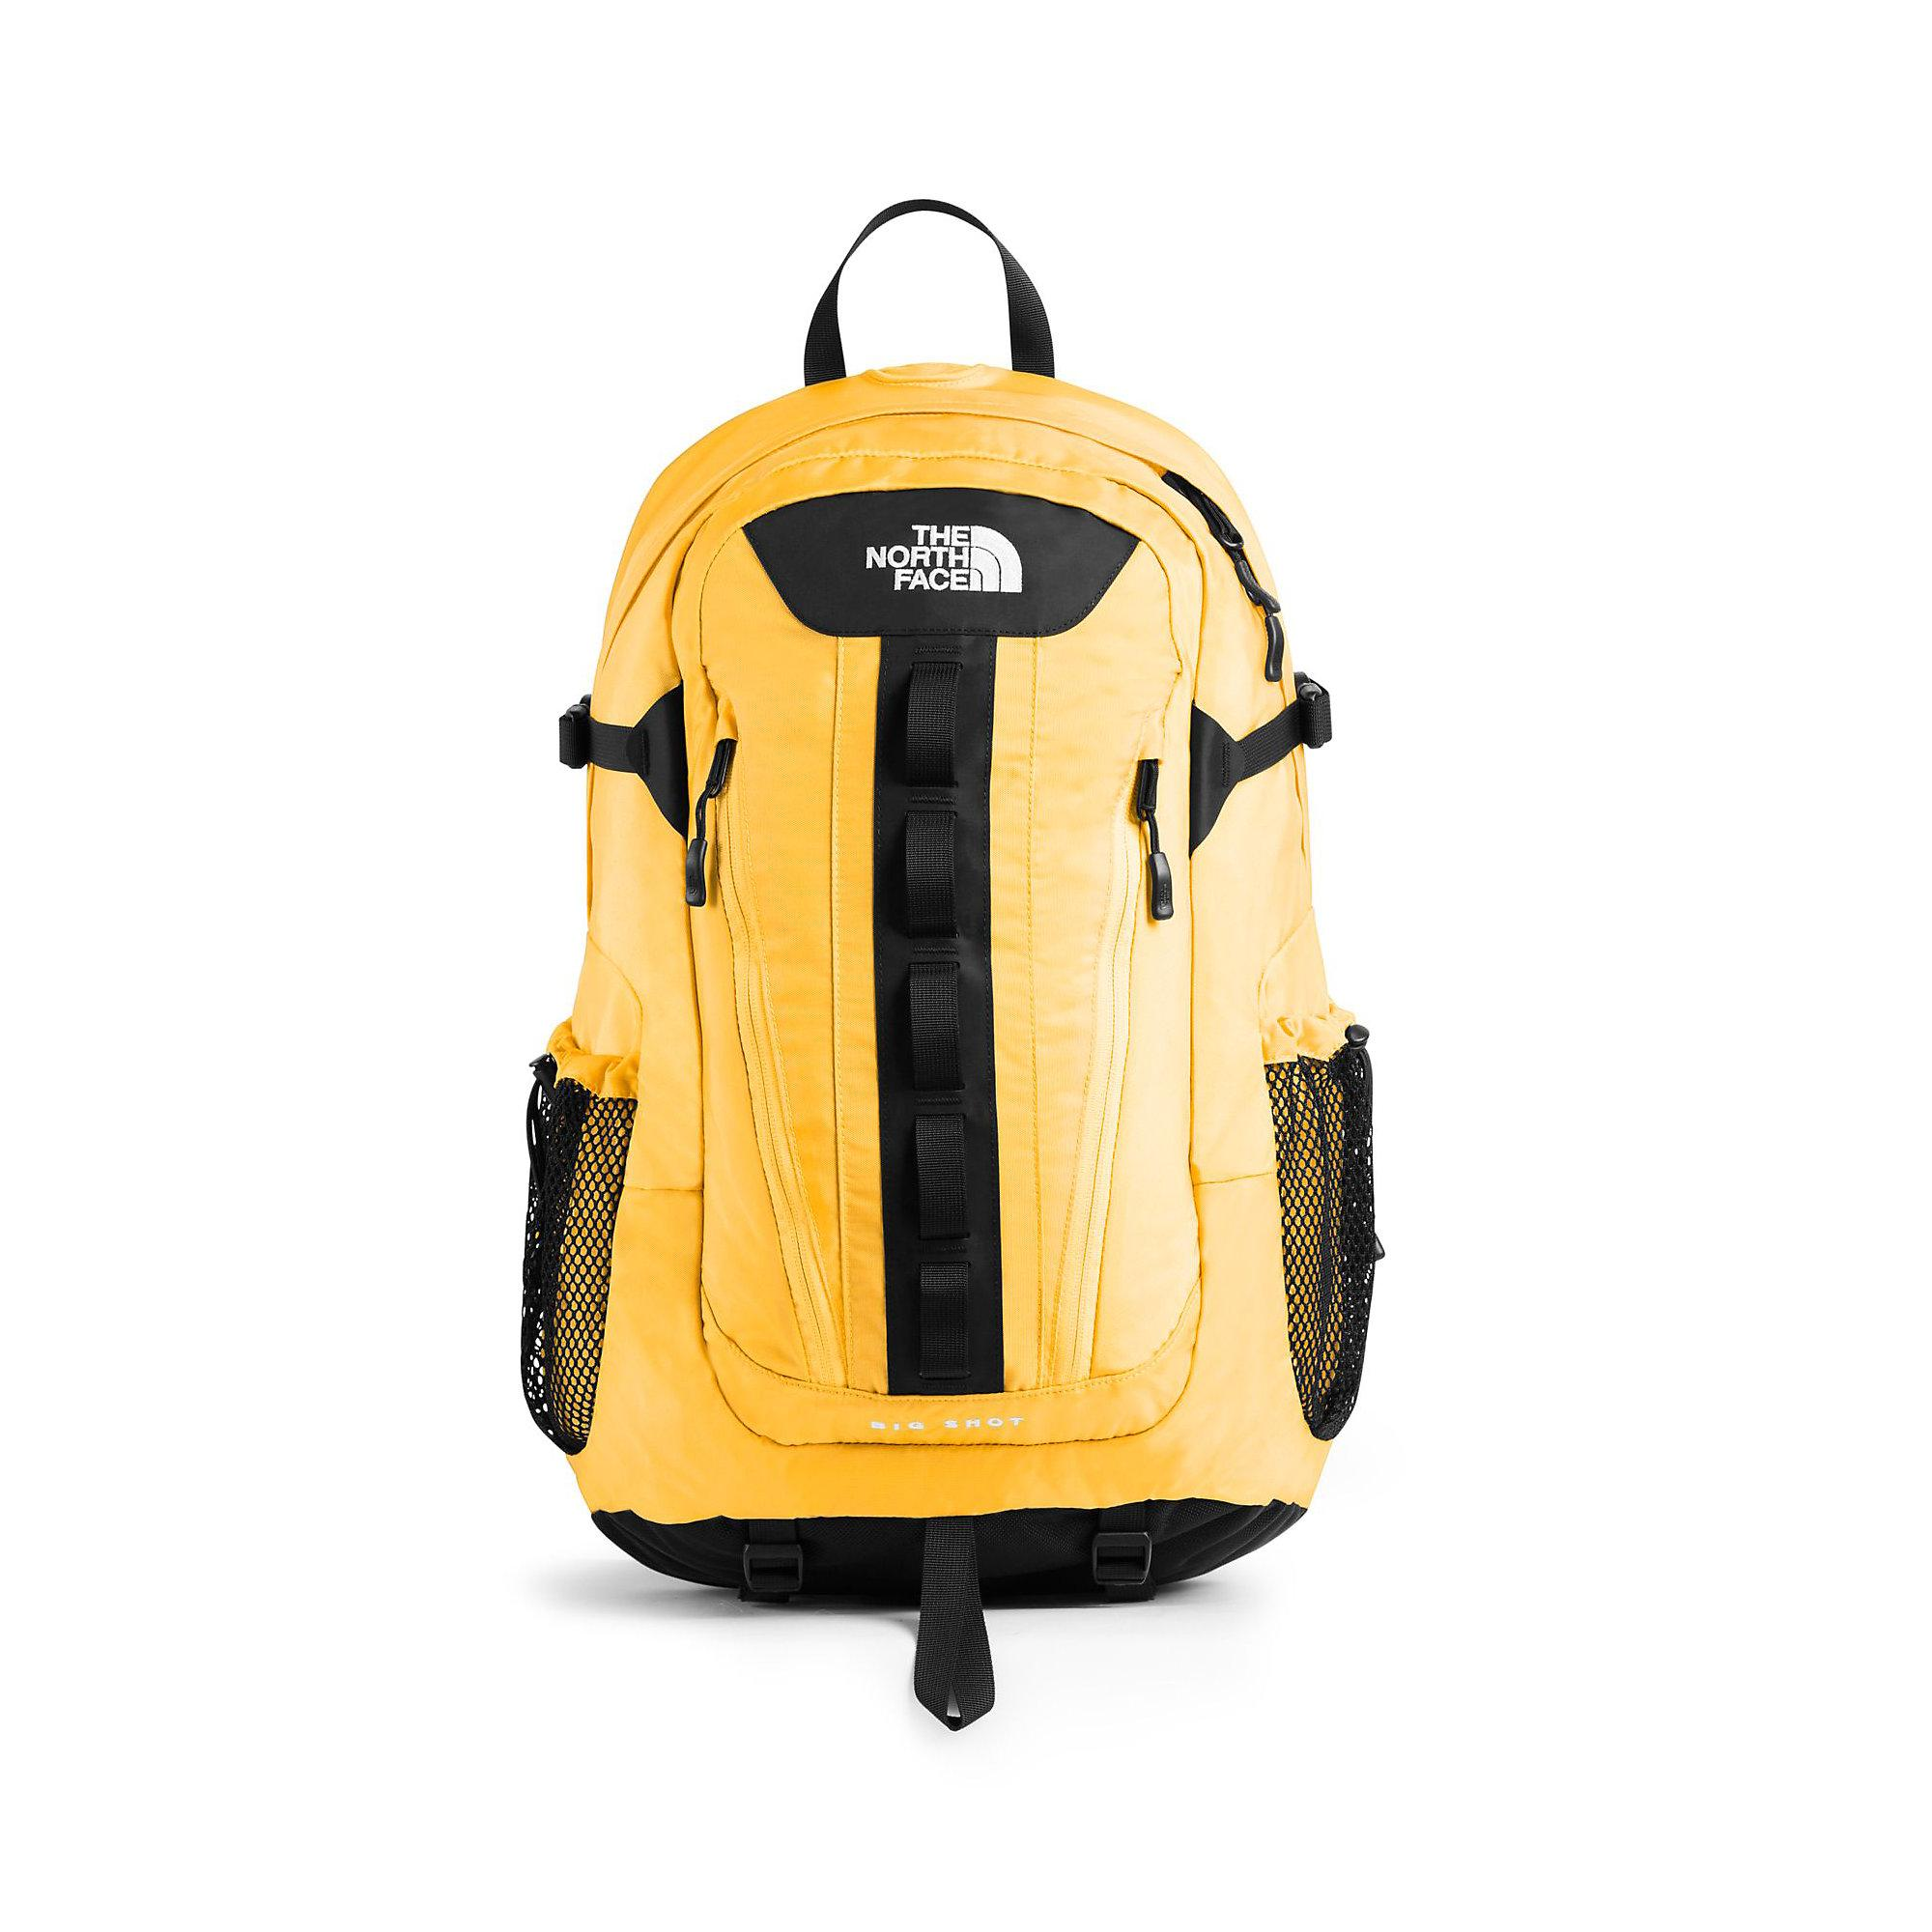 84f467bfc The North Face Big Shot Se Backpack in Yellow - Lyst